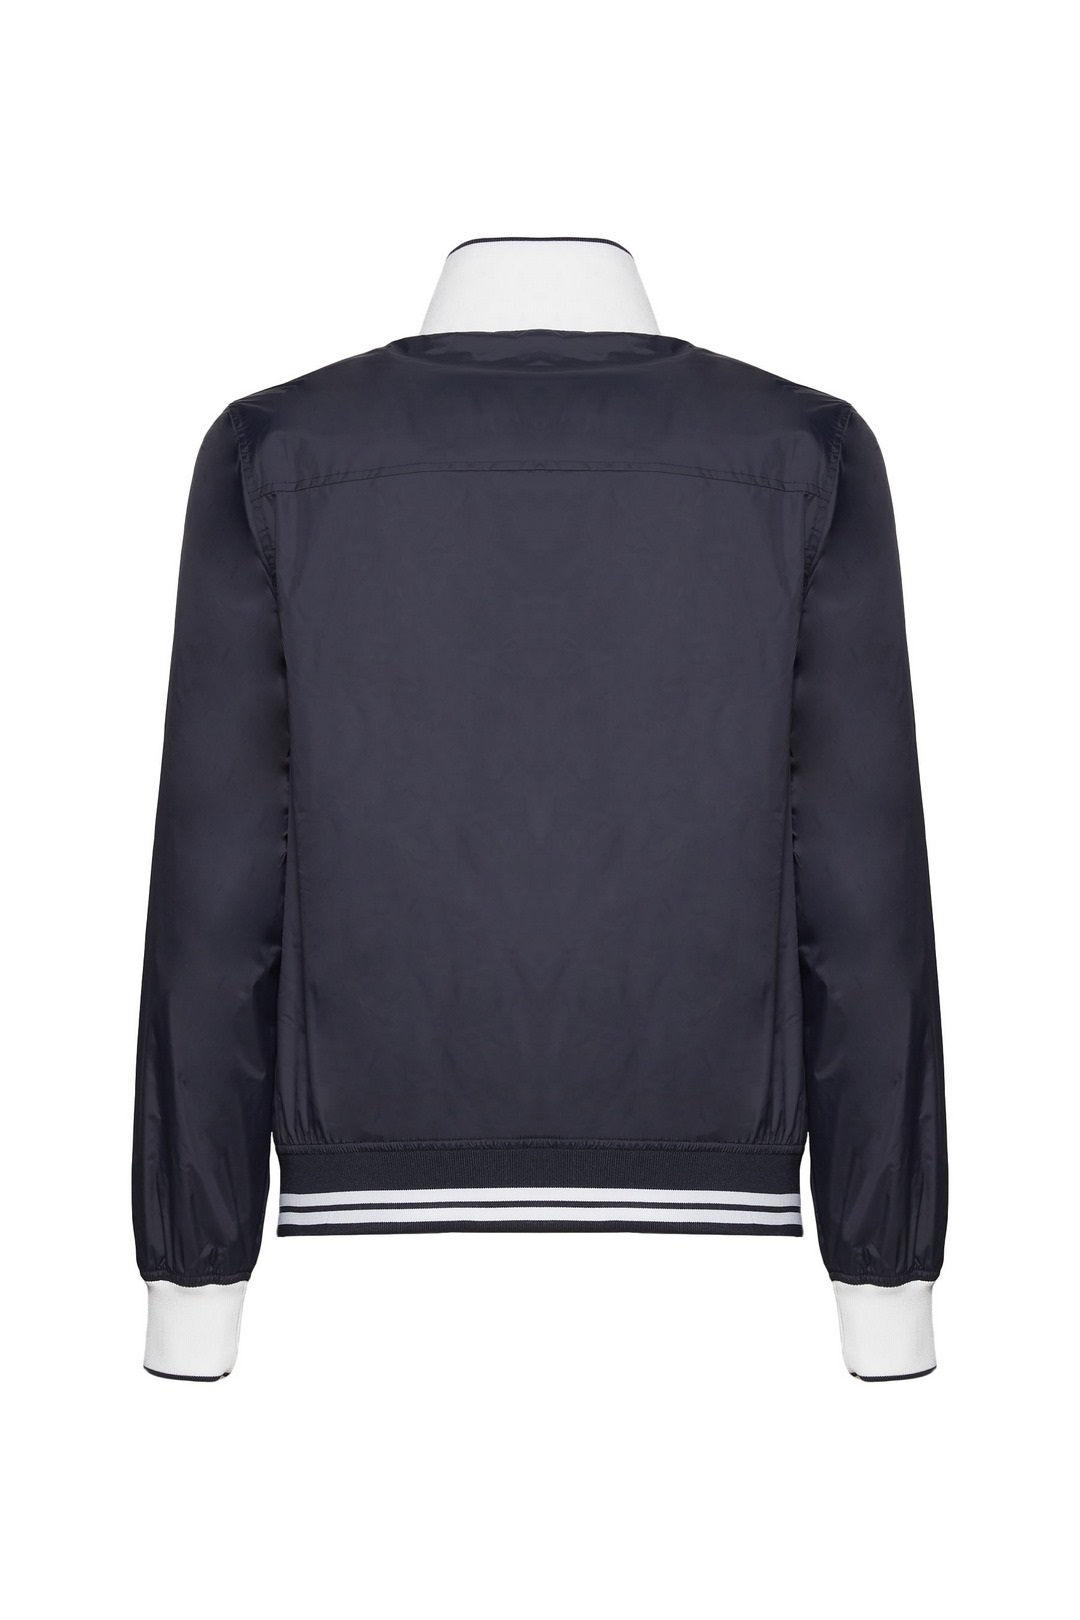 Frecce Tricolori Sailor jacket 2